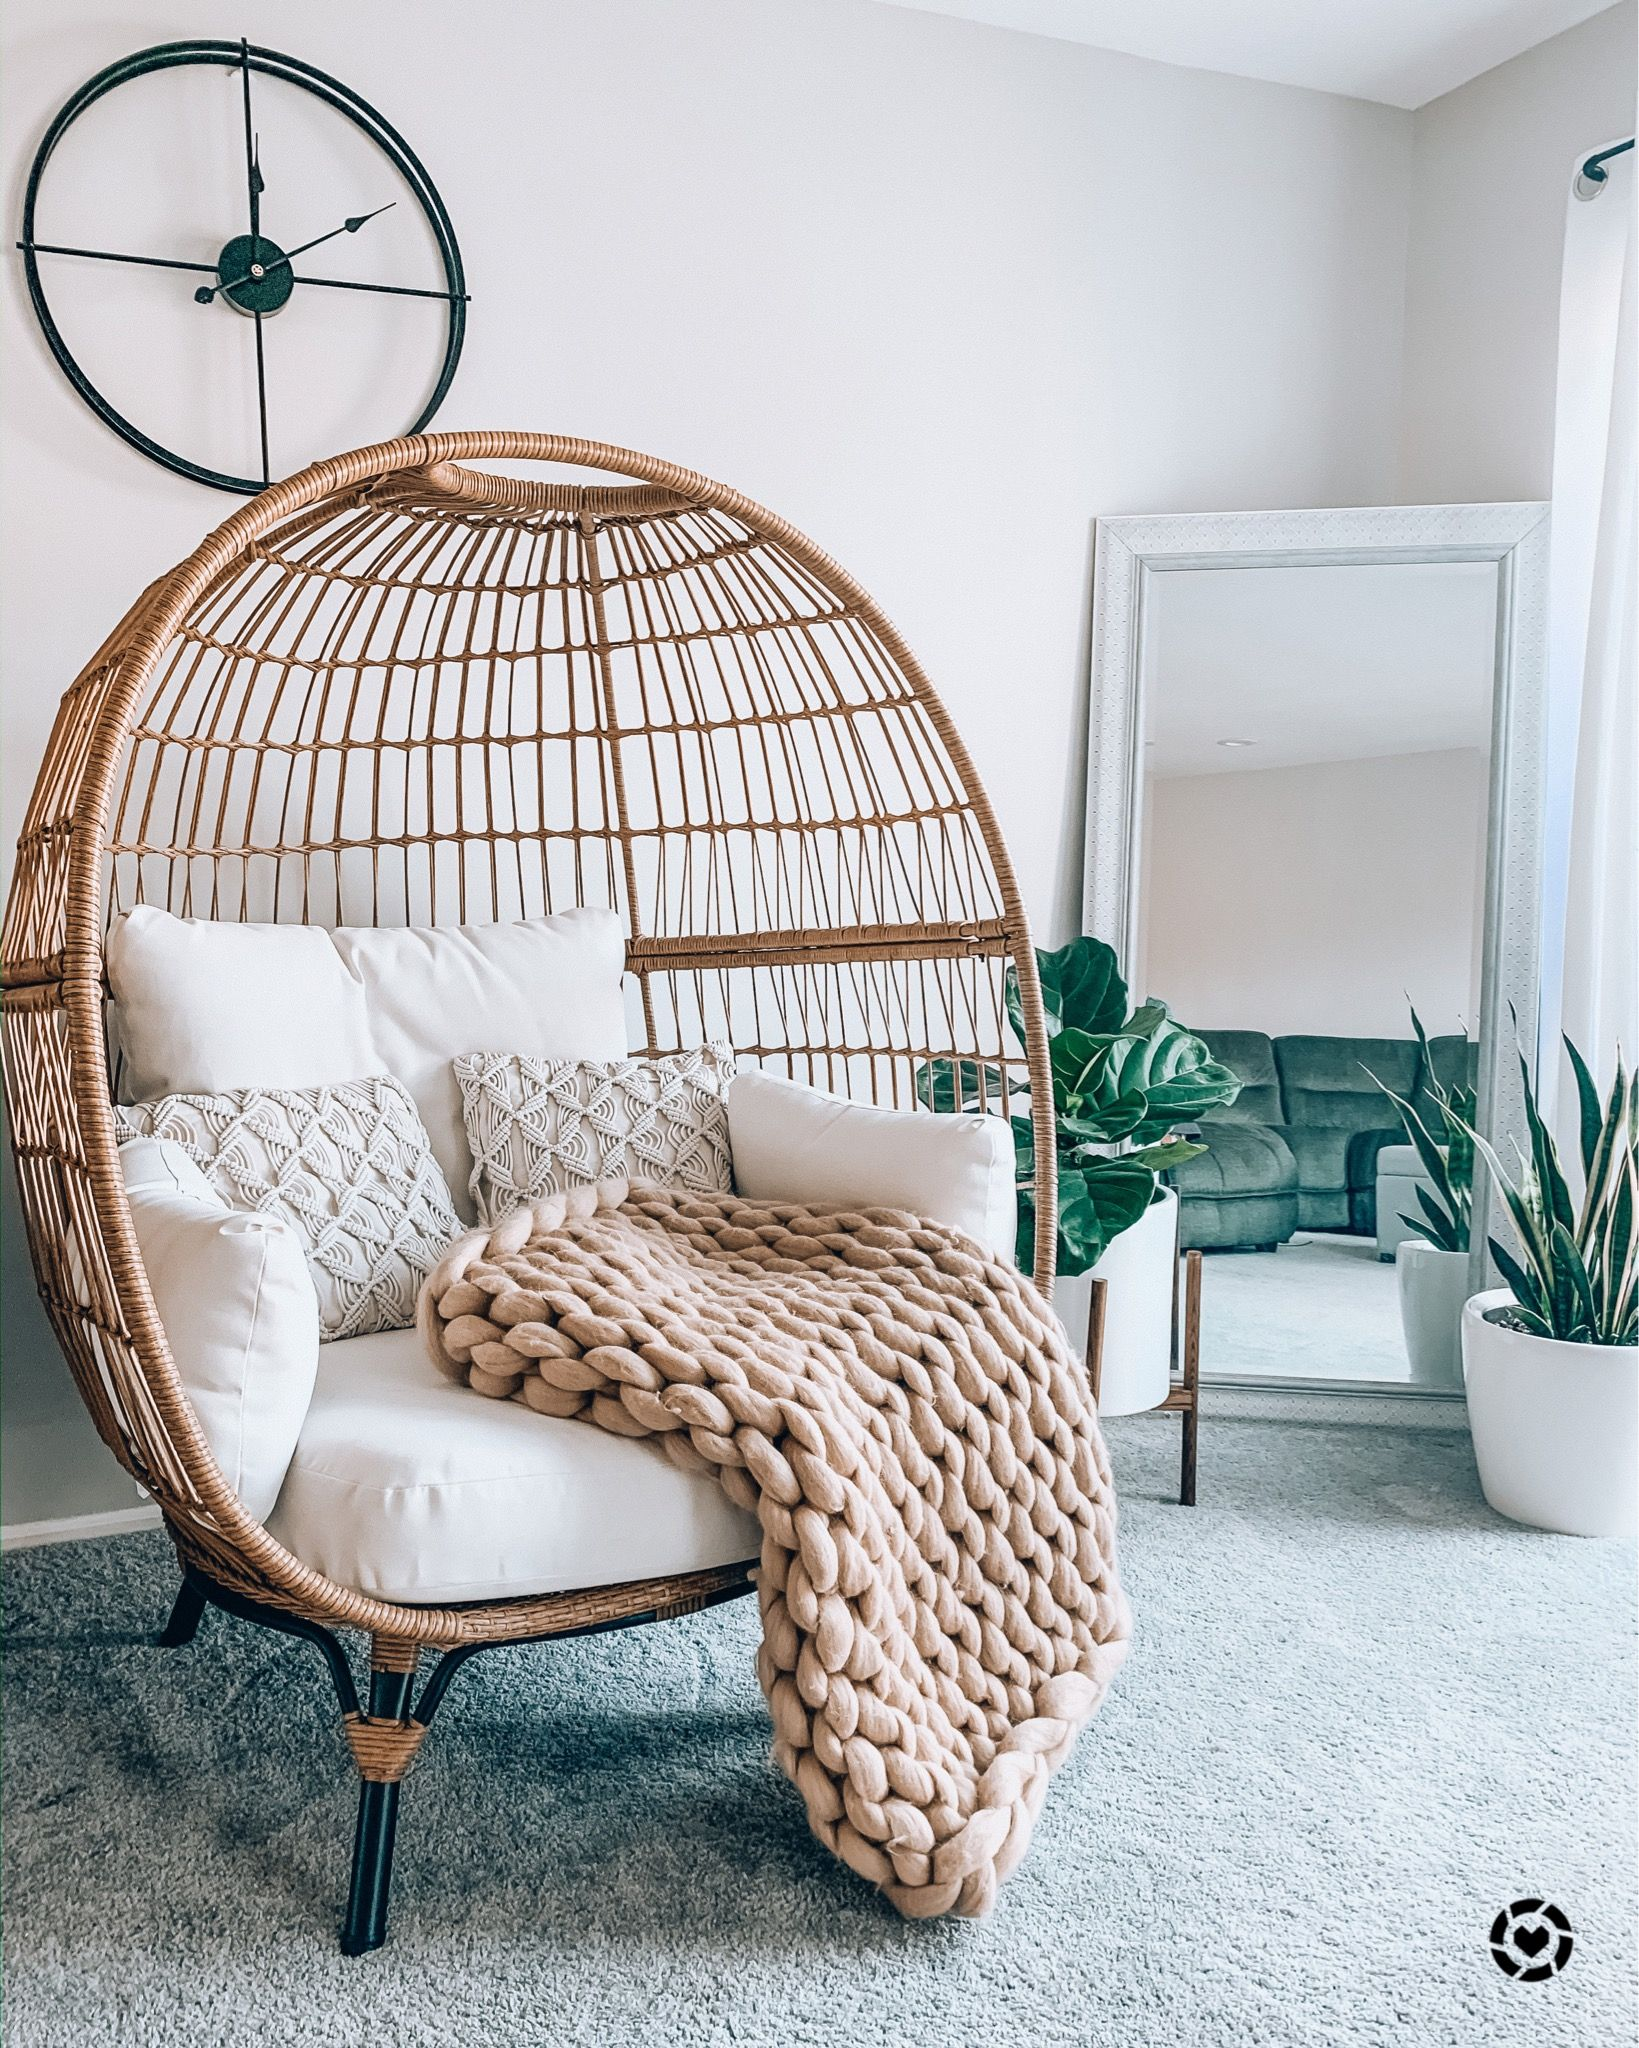 Living Room Egg Chair LIKEtoKNOW.it in 2020 Egg chair